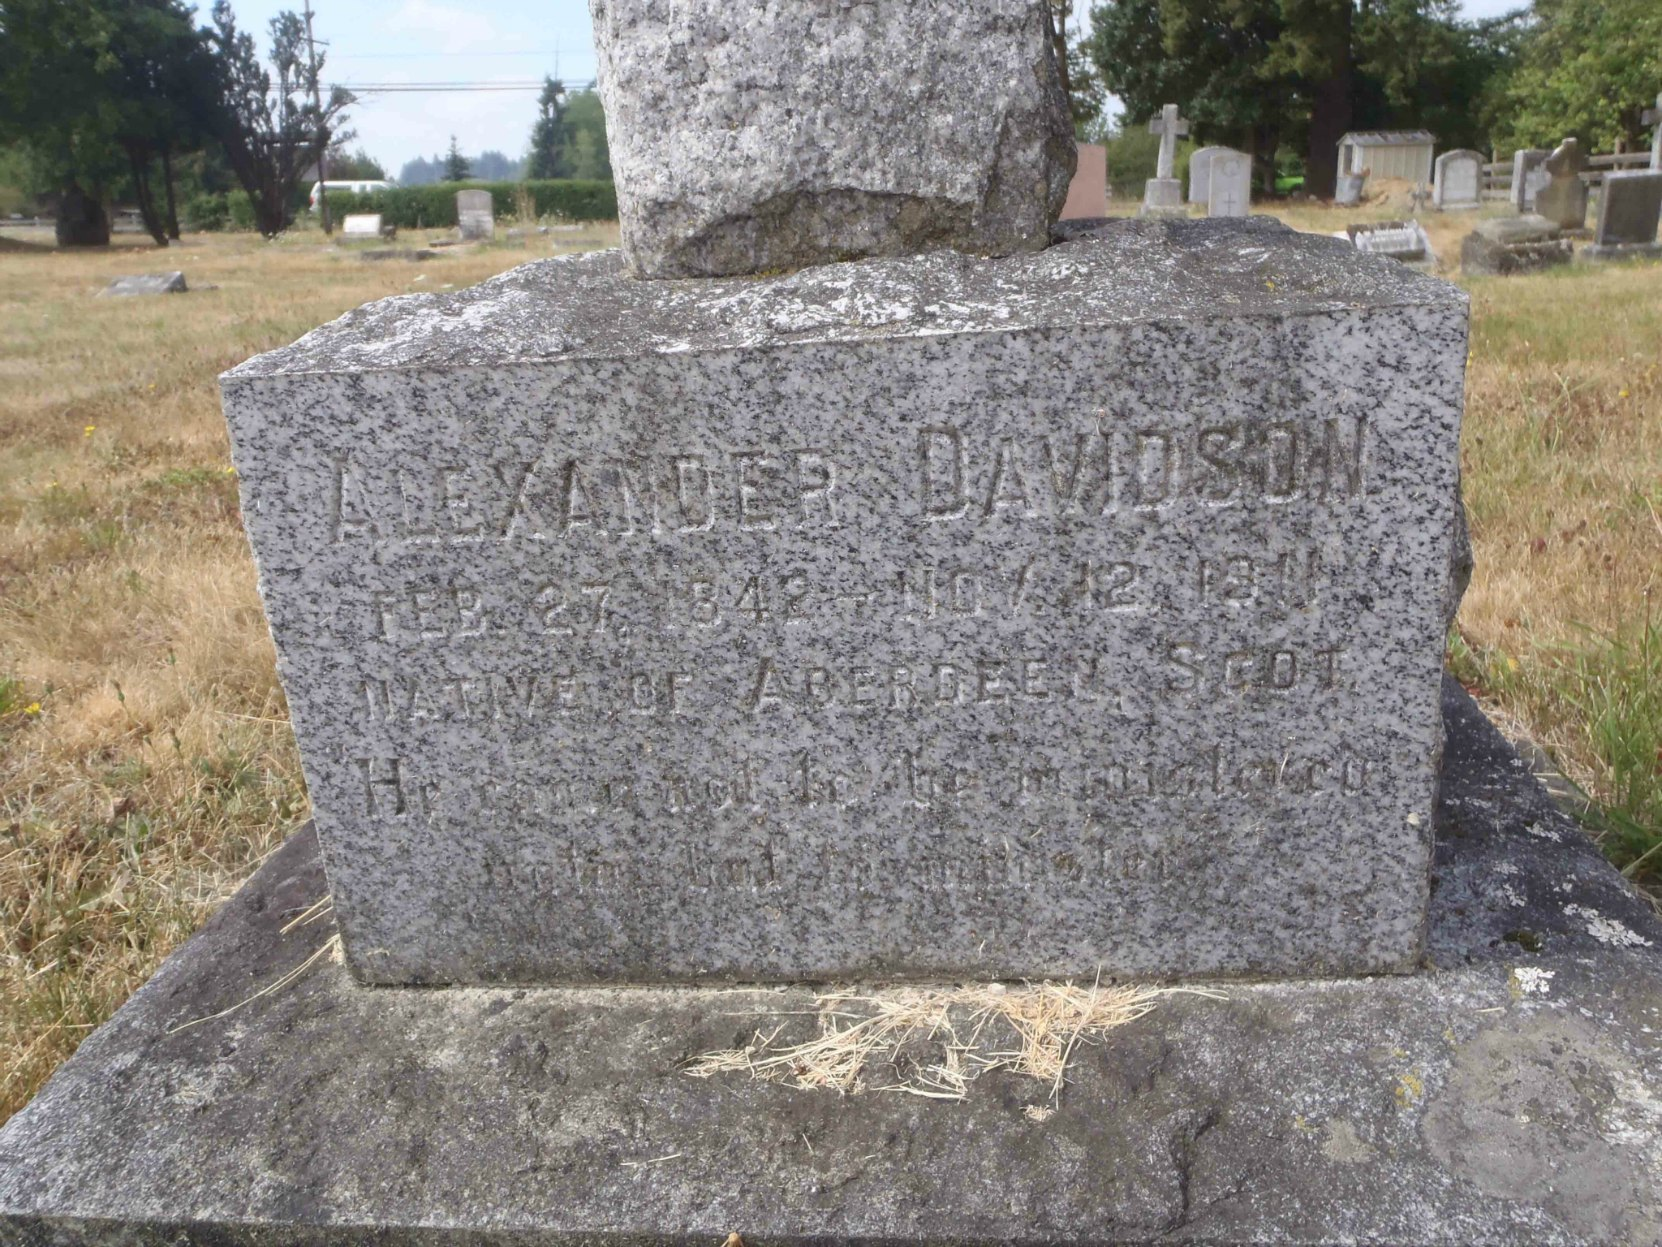 Alexander Davidson grave stone inscription, St. Mary's Somenos Anglican cemetery, North Cowichan, B.C.